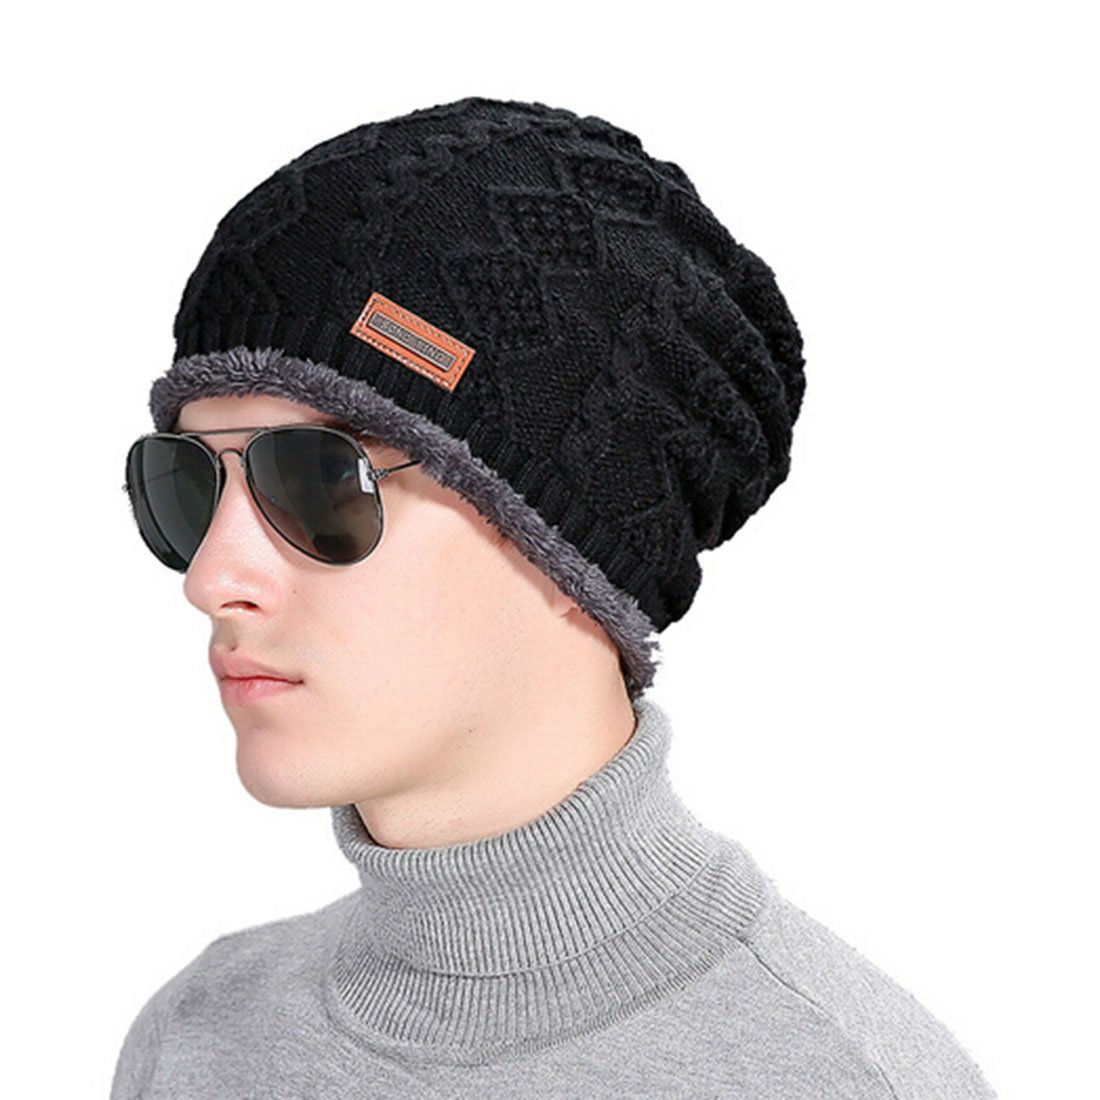 4e08d31f912 Little Chair Men Women Cannabis Knitted Thick Cashmere Winter Earflap Beanie  Hat Crochet Skull Ski Cap (Black) at Amazon Men s Clothing store